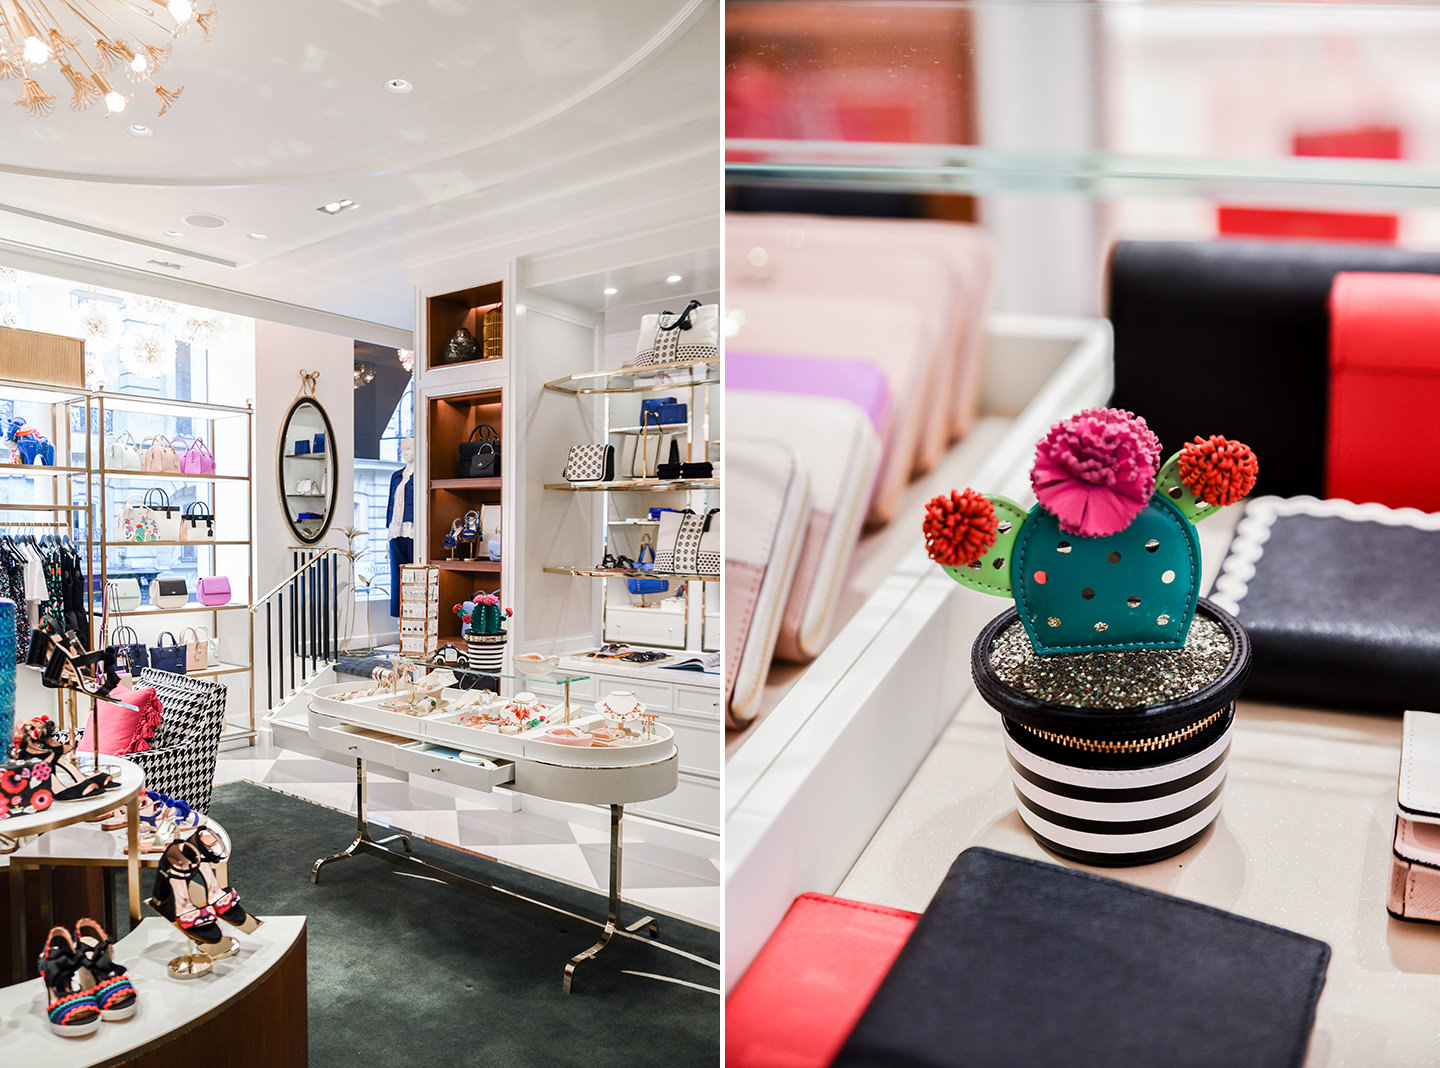 Blog-Mode-And-The-City-Lifestyle-Kate-Spade-Paris-418-rue-saint-honore-montage2